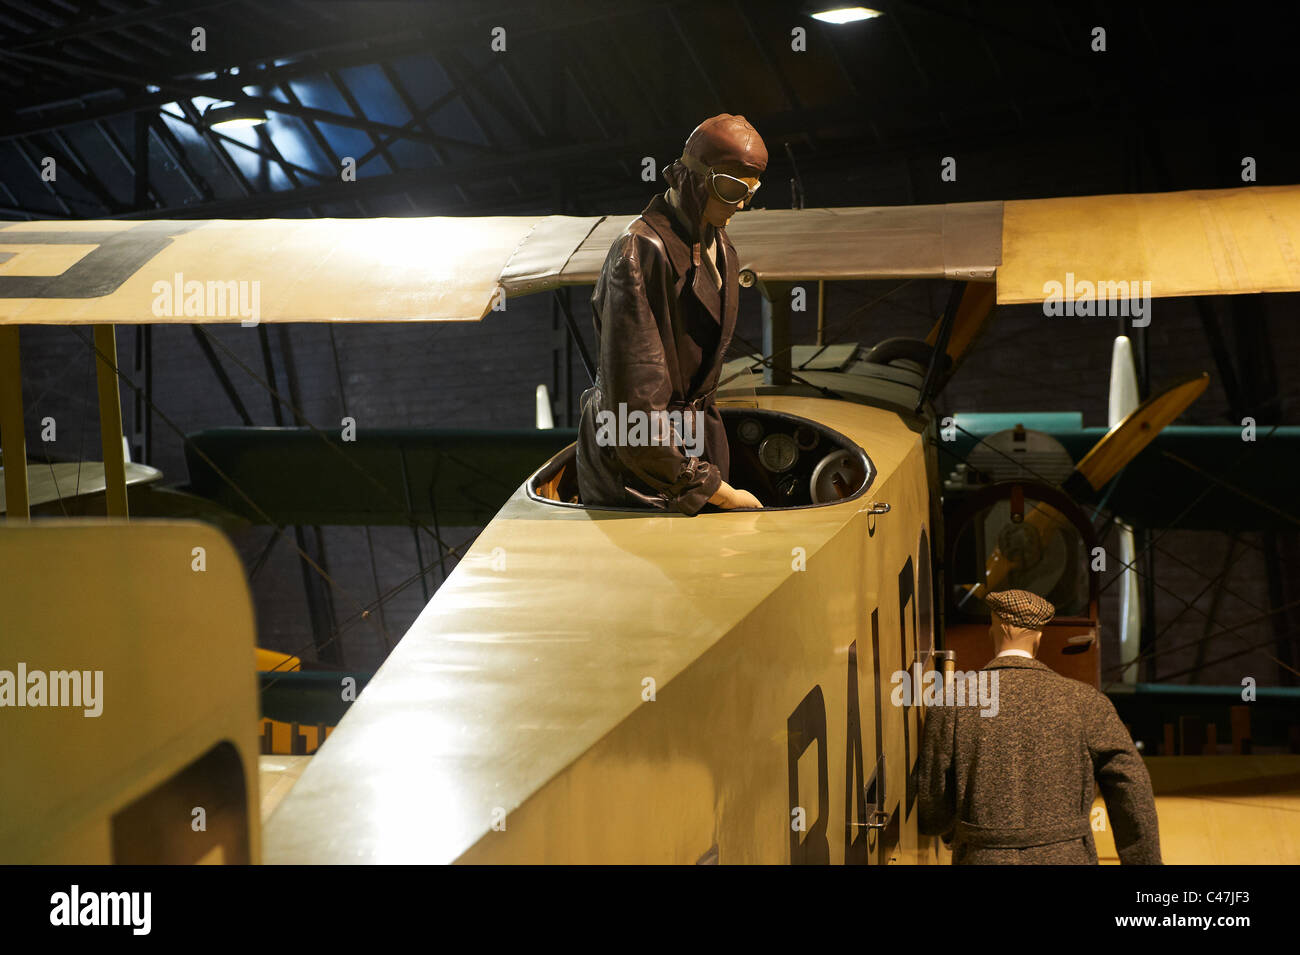 The Aviation Museum Kbely - Letecke muzeum - Muzeum letectvi a kosmonautiky Prague Czech Republic - Stock Image